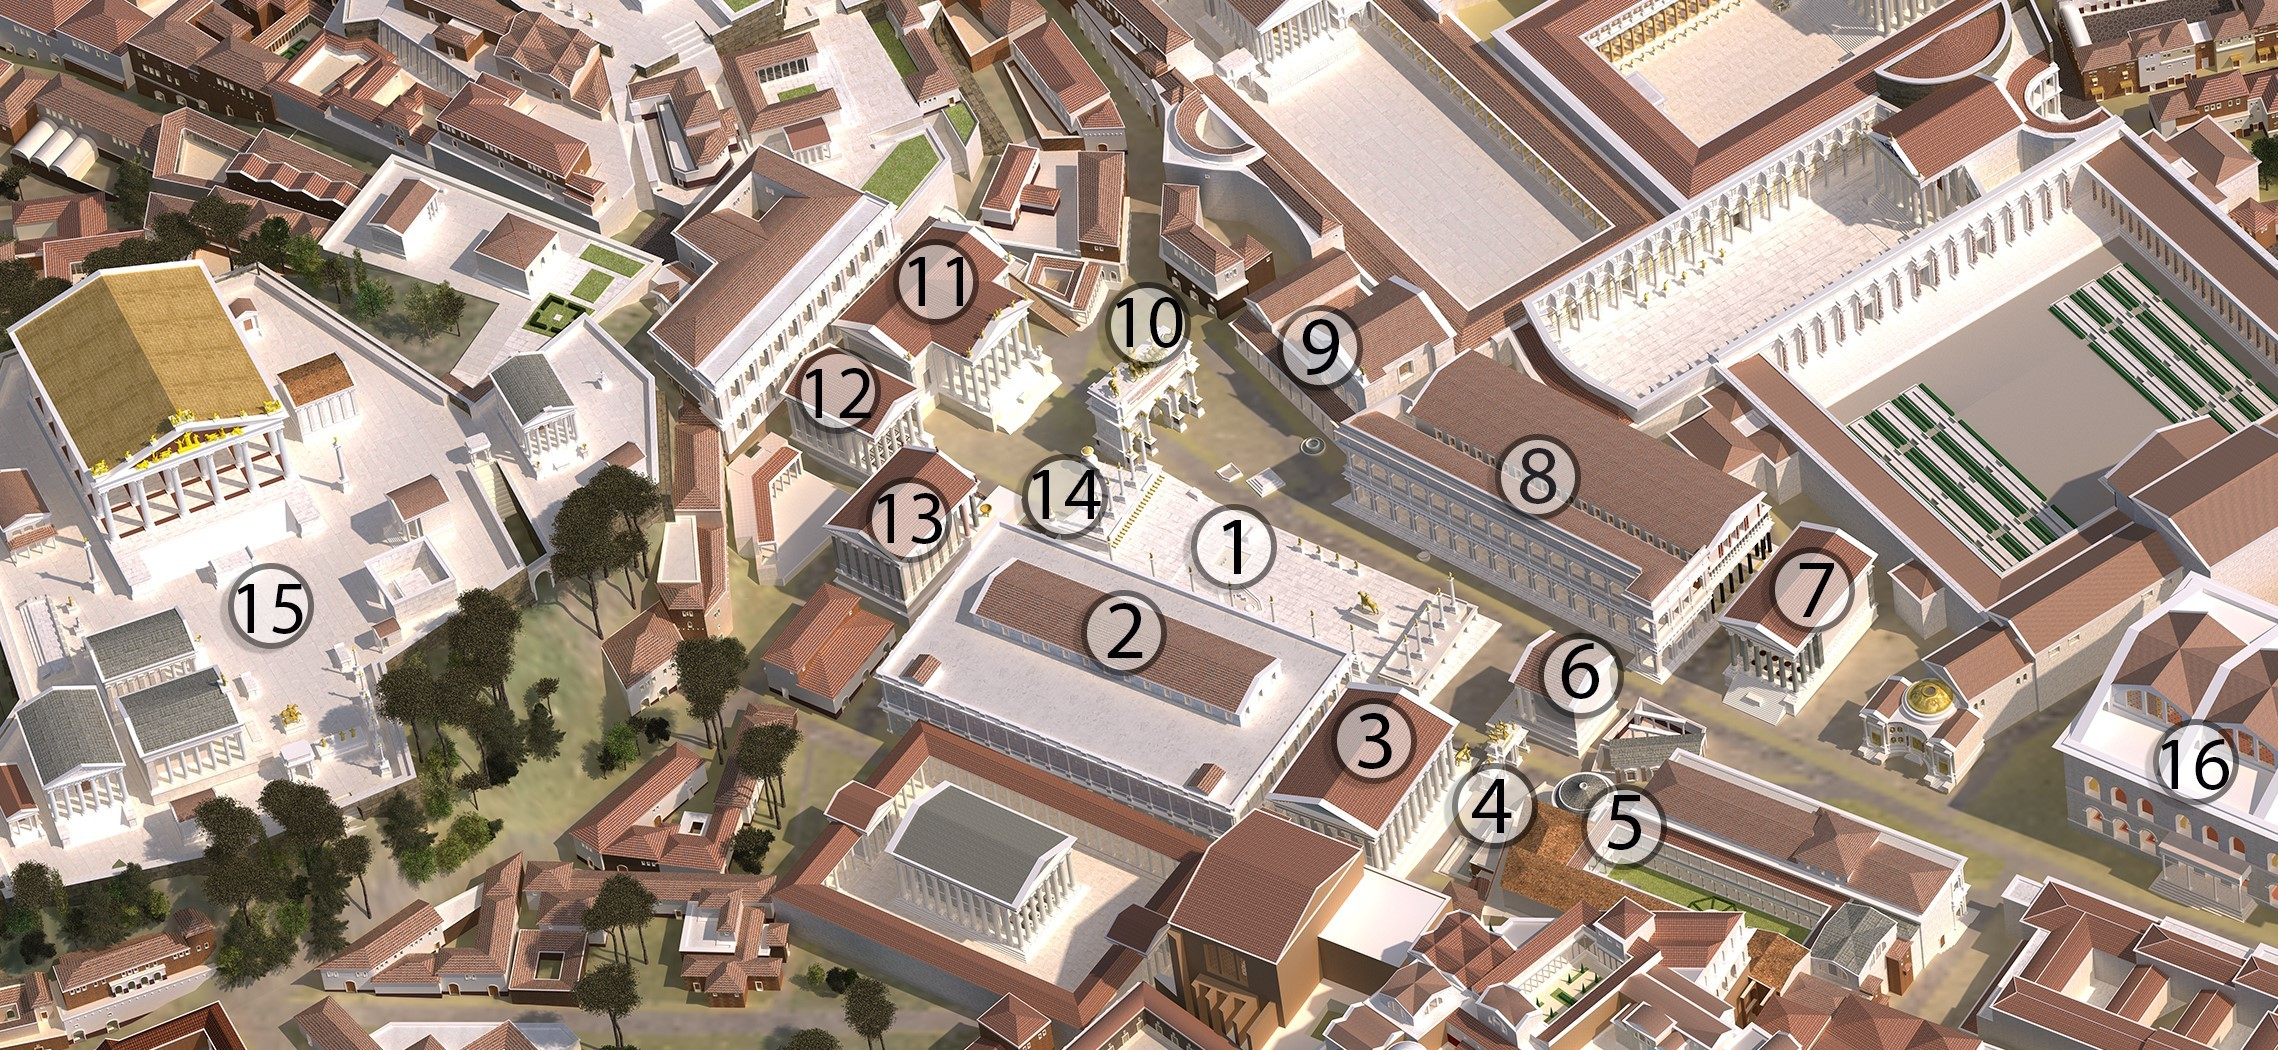 An image of the Forum from the digital model